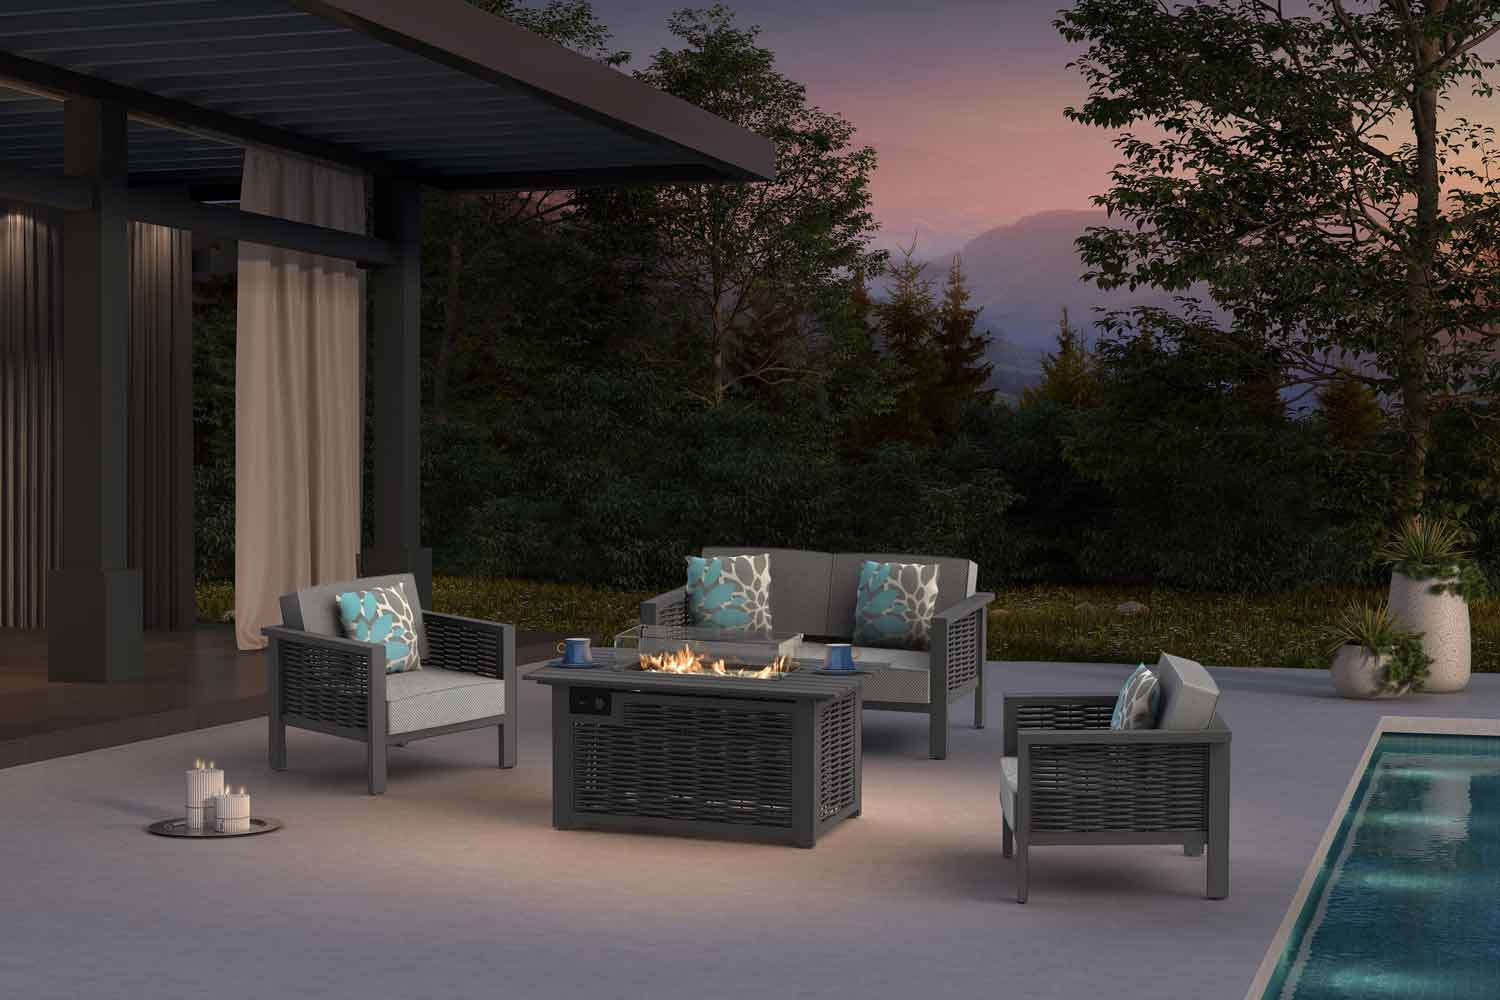 Outdoor propane tabletop fireplace